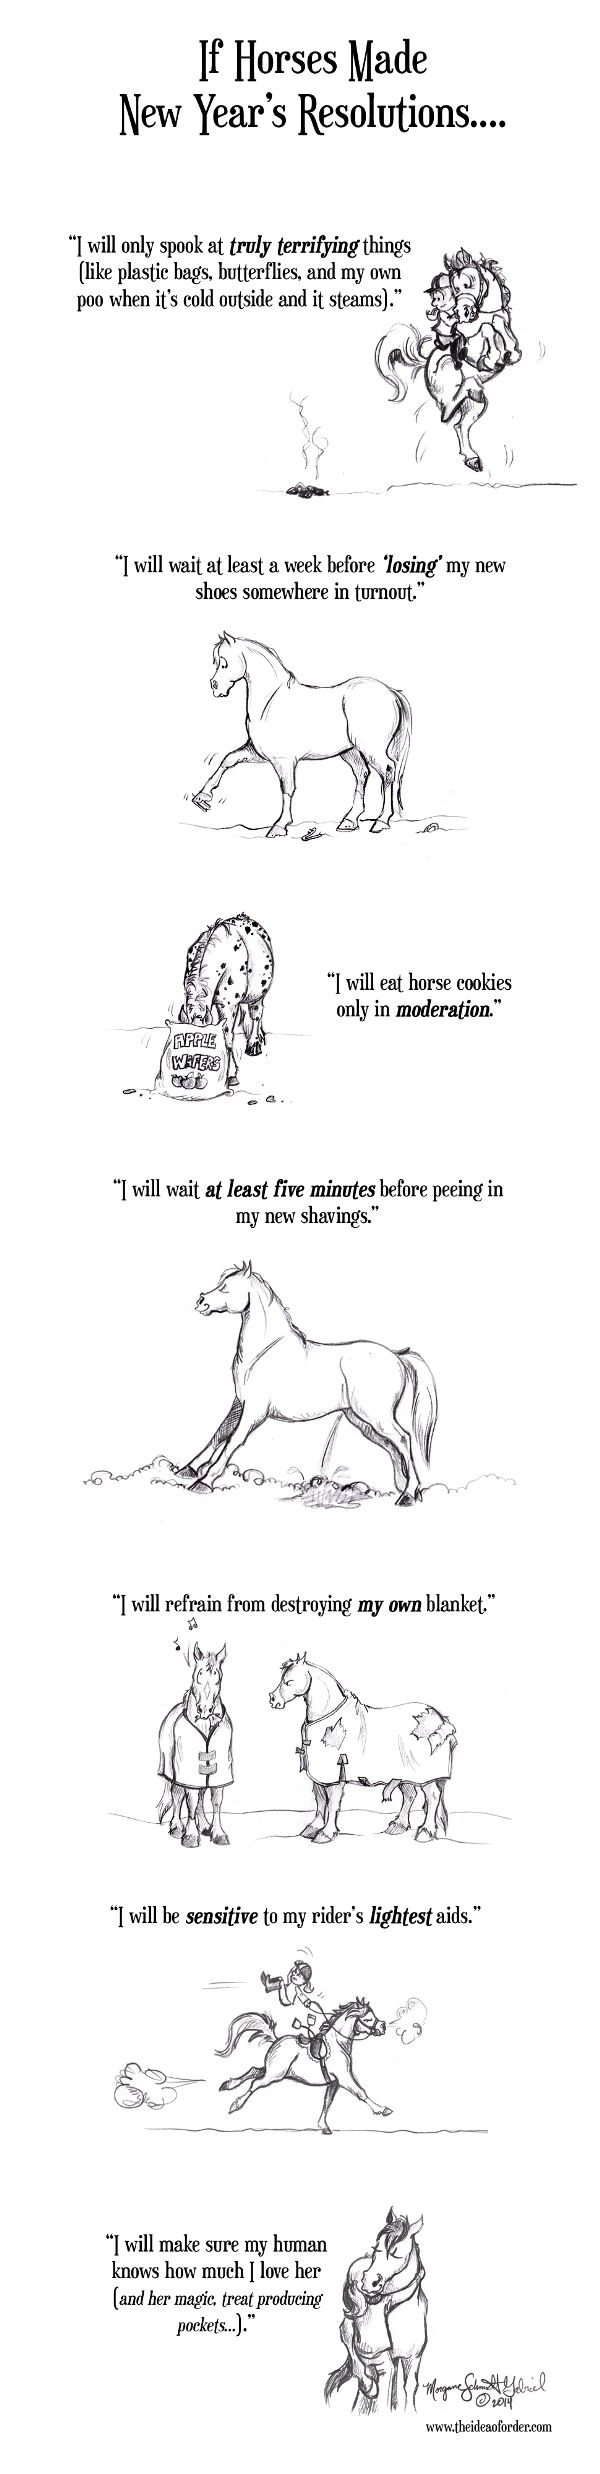 If Horses made New Years Resolutions! #horses #comic #funny